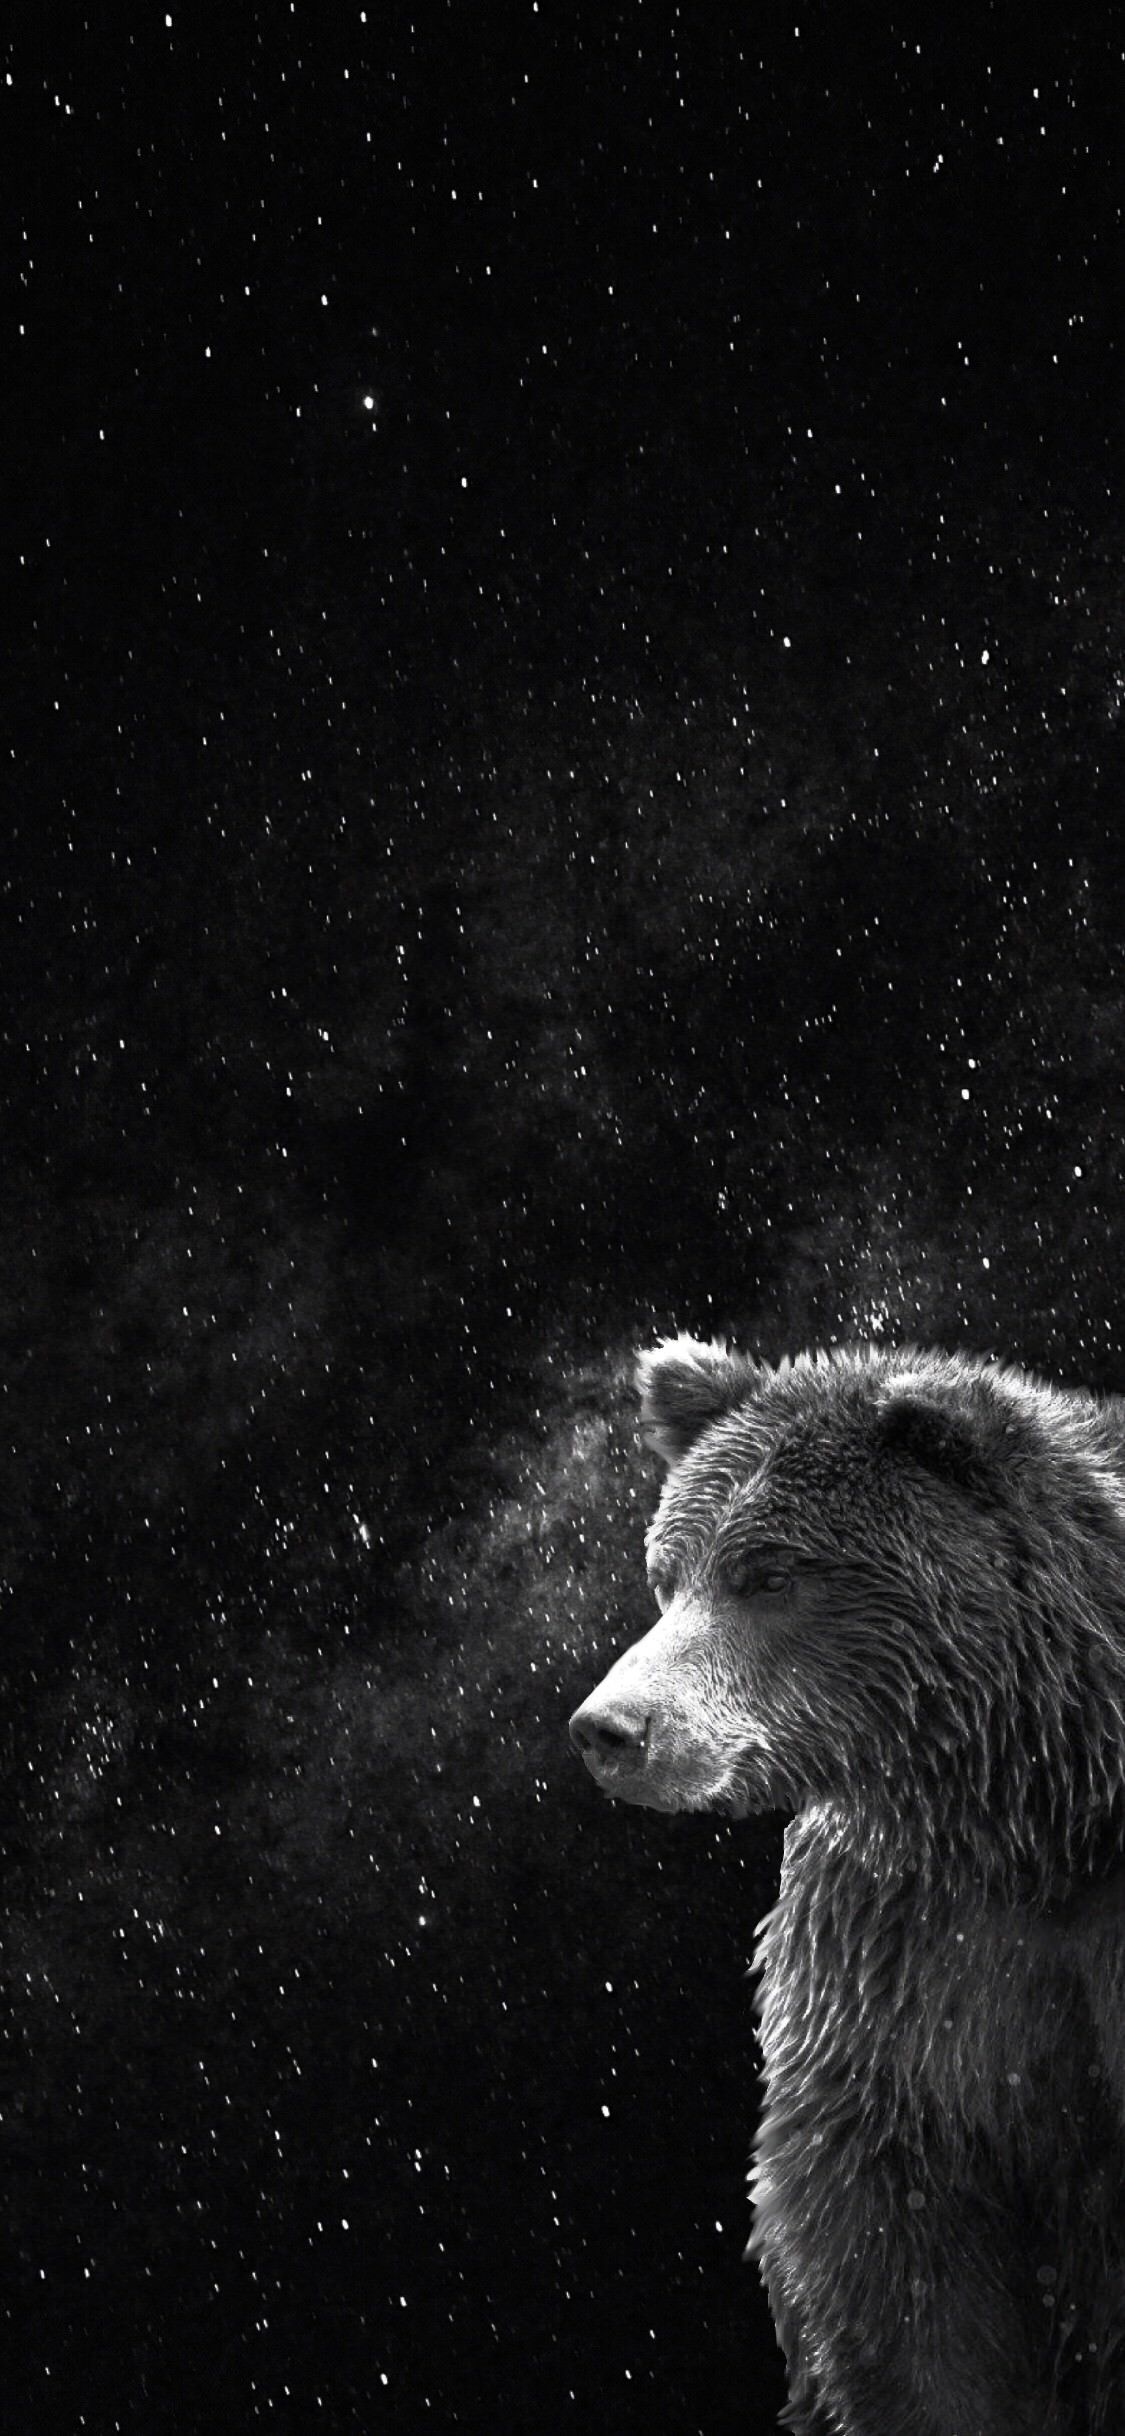 Bear In Front Of Night Sky Download At Http Www Myfavwallpaper Com 2018 03 Bear In Front Of Night Sky Ht Moon And Stars Wallpaper Bear Wallpaper Night Skies